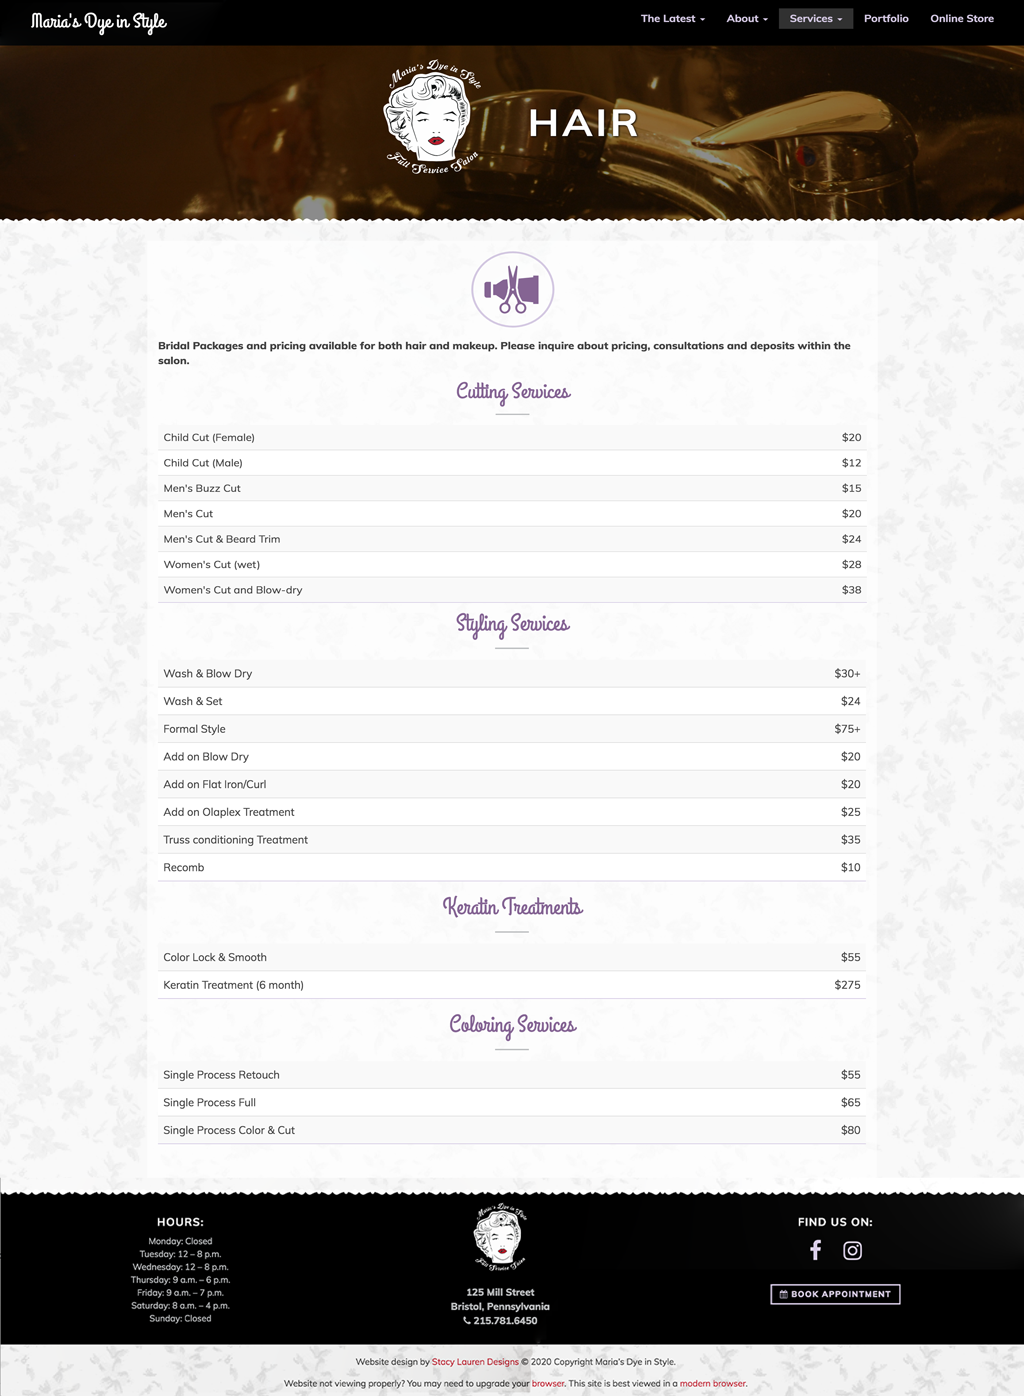 marias dye in style services page